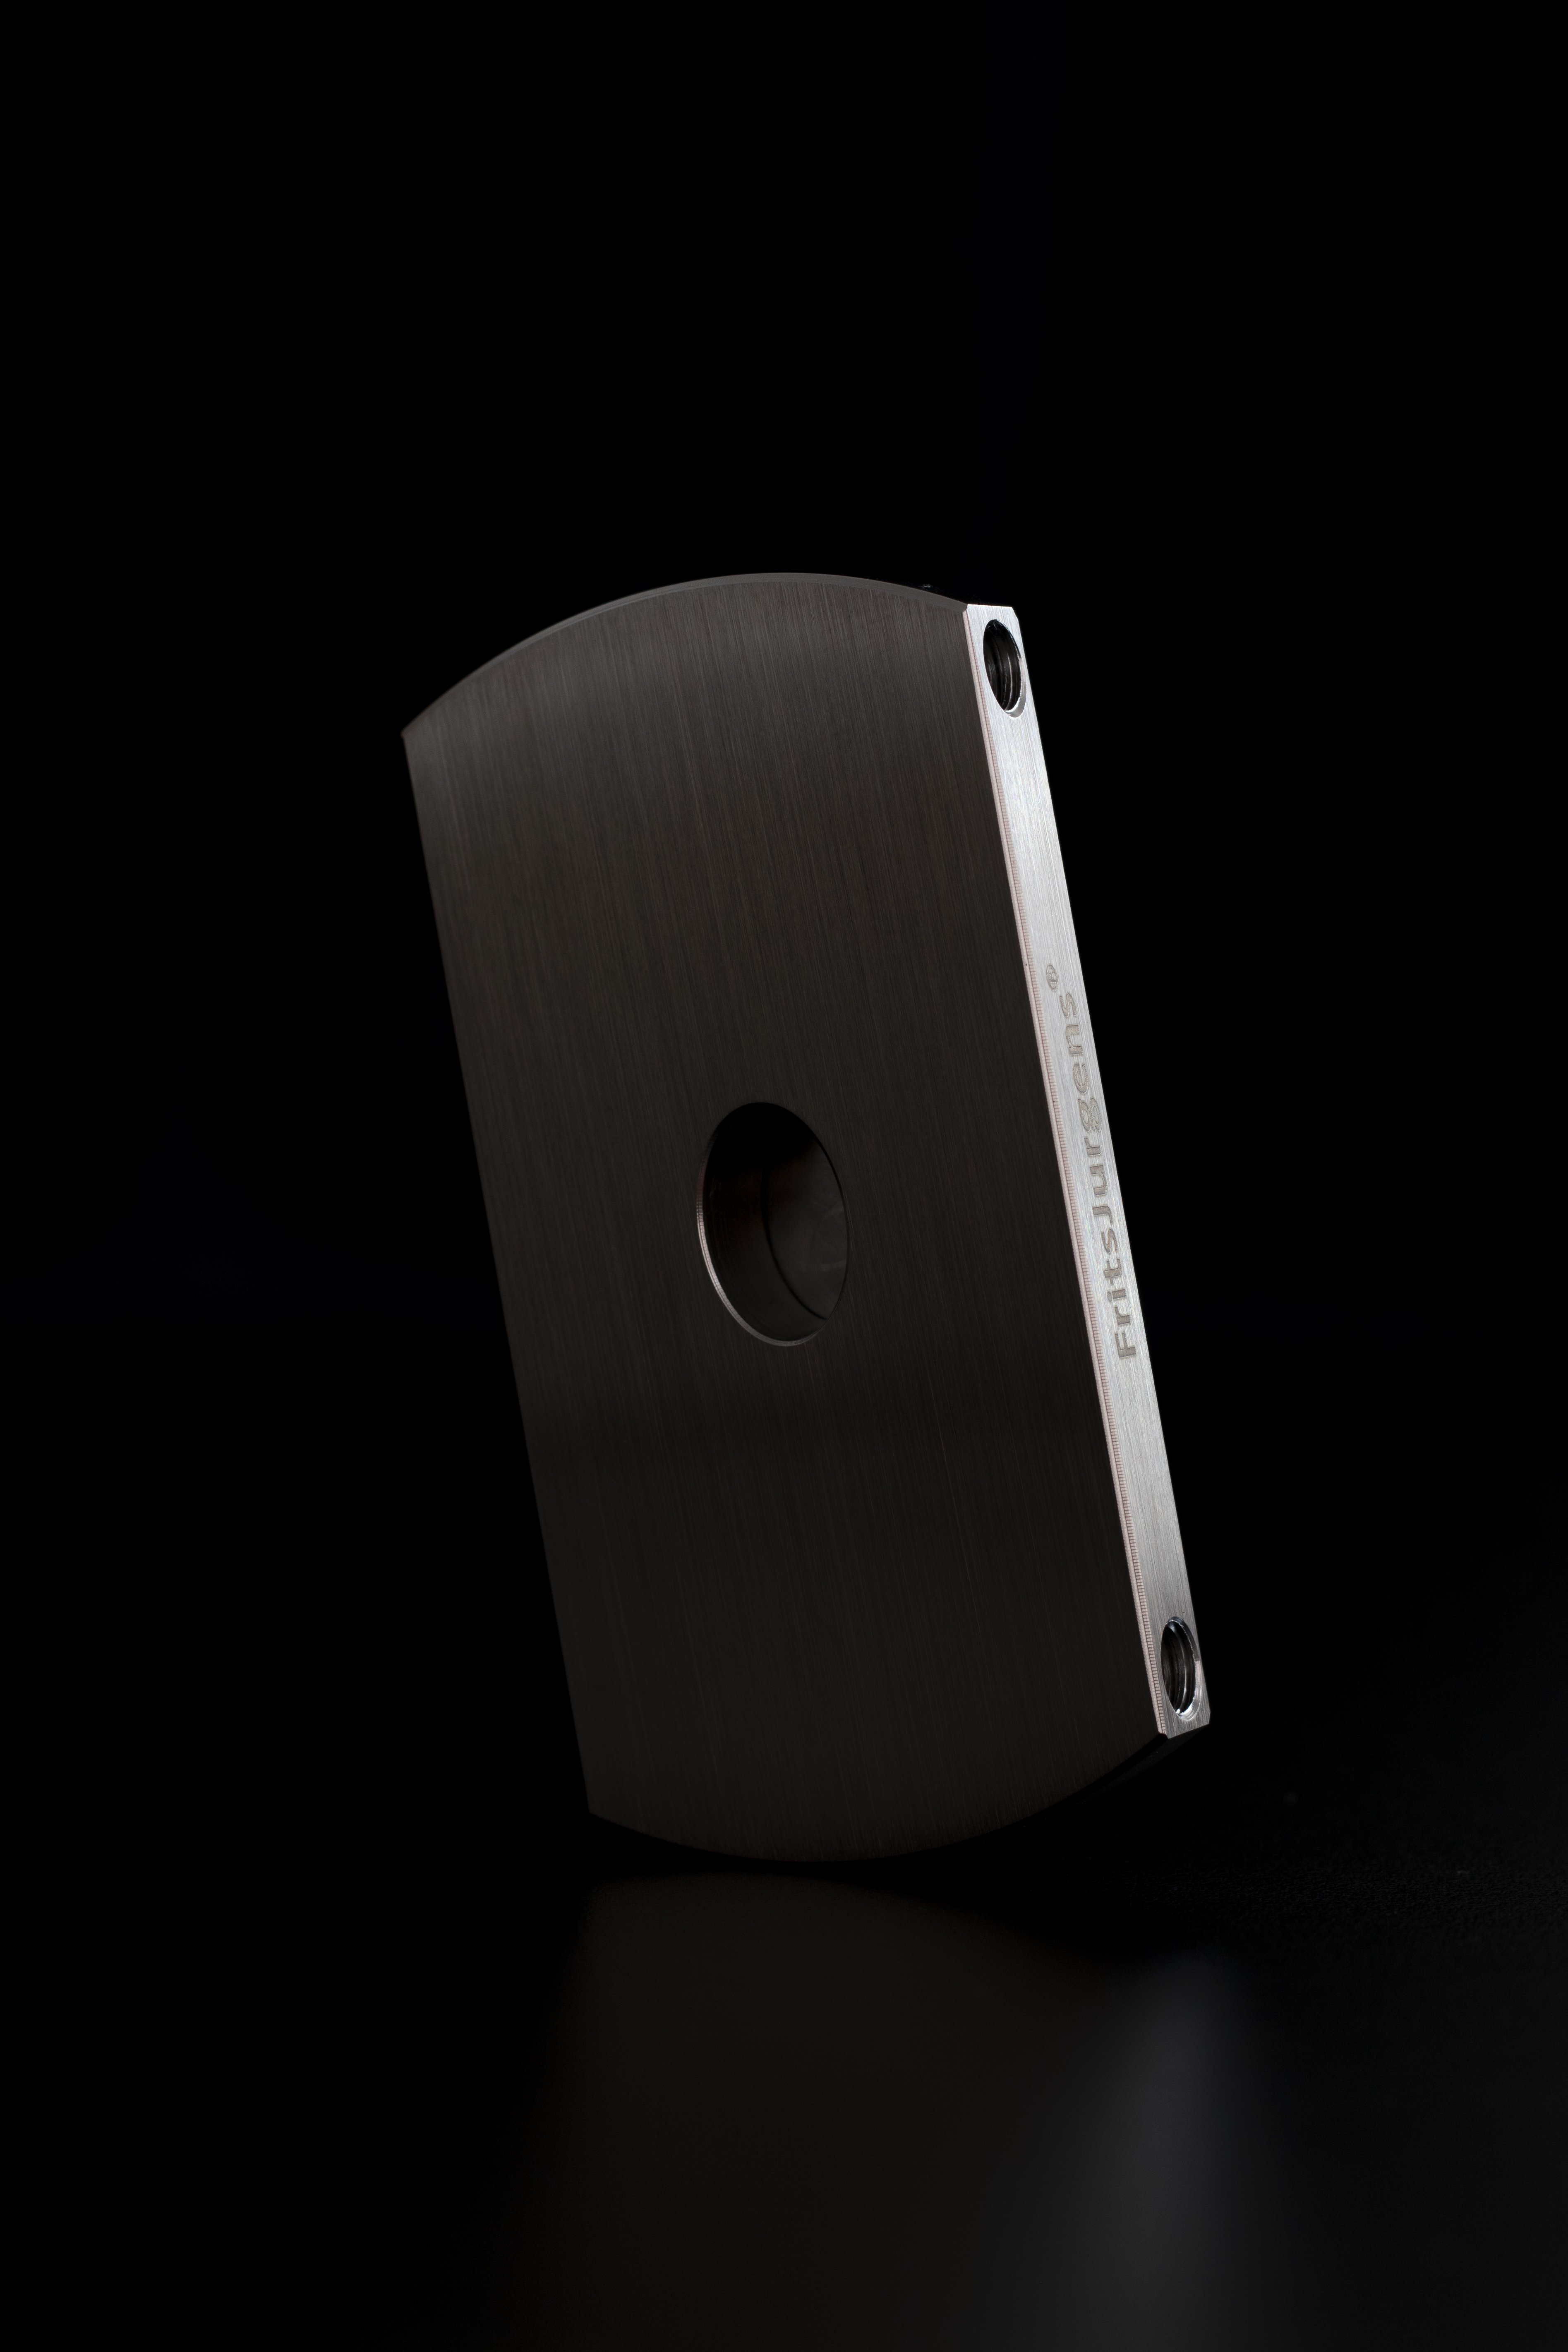 A FritsJurgens floor plate. These are available in various shapes and colors.